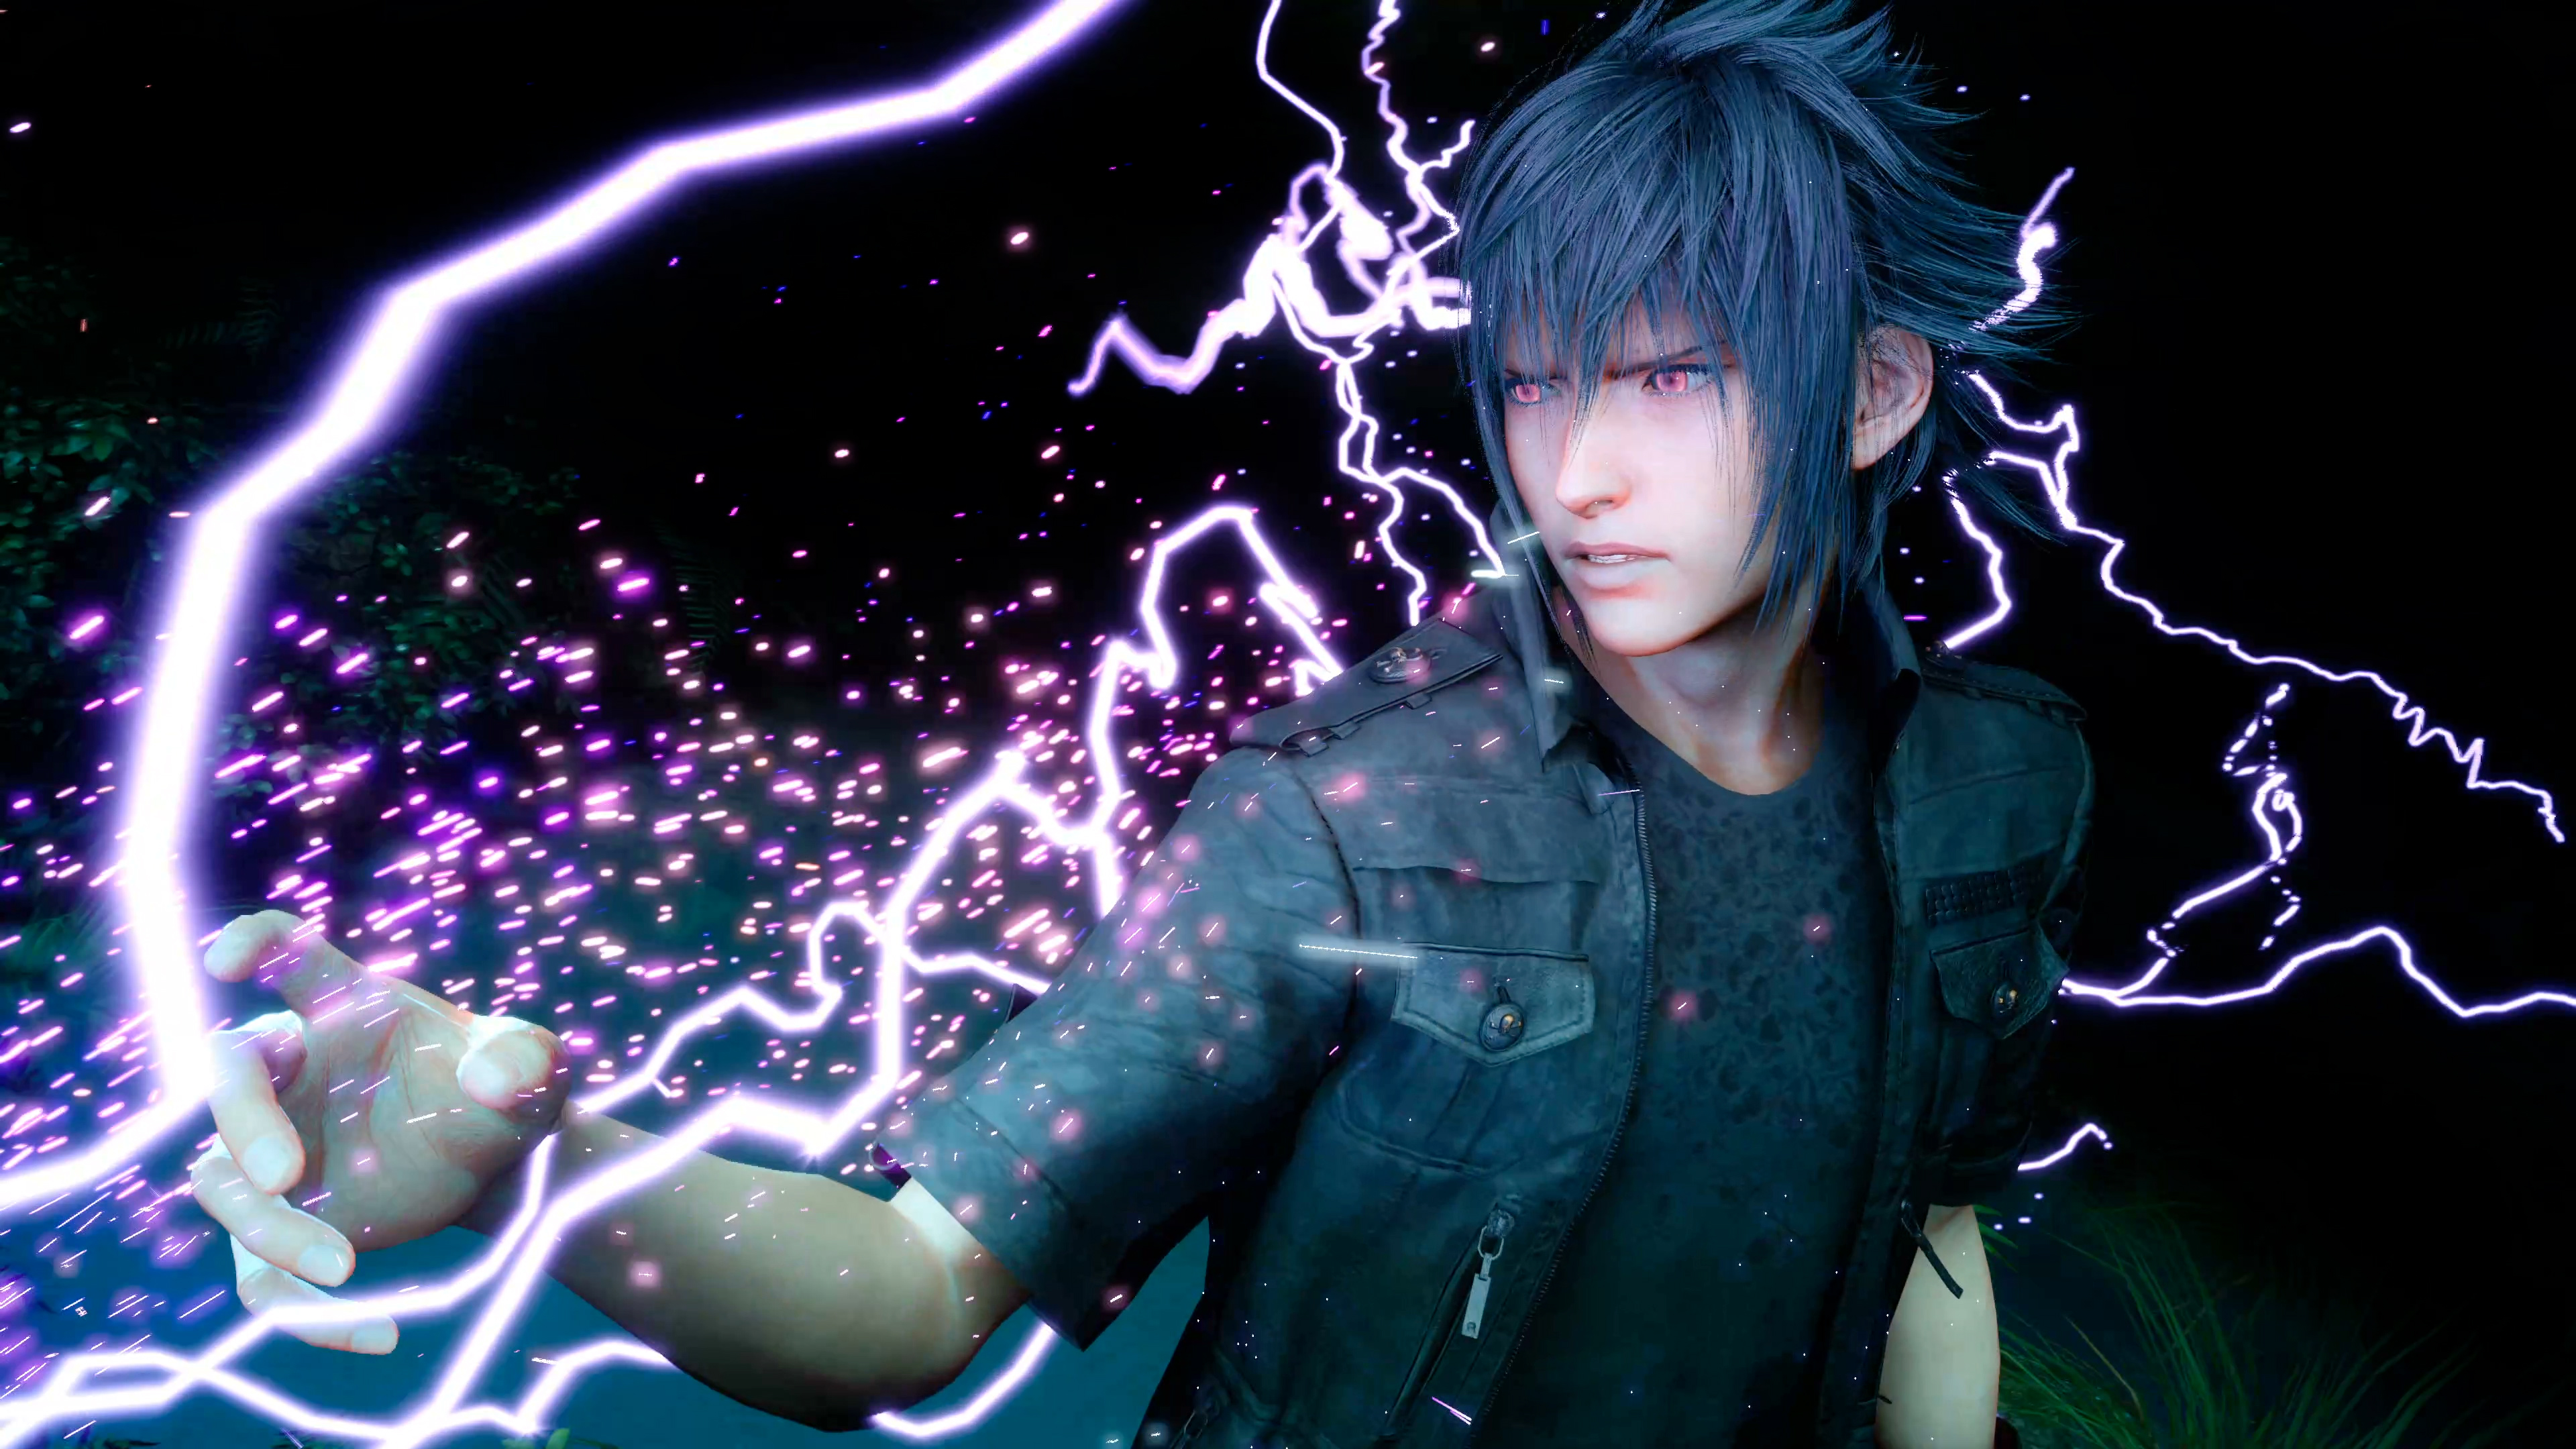 Final Fantasy Xv Wallpaper 78 Images: Final Fantasy XV Missables Guide: All The Content You Can